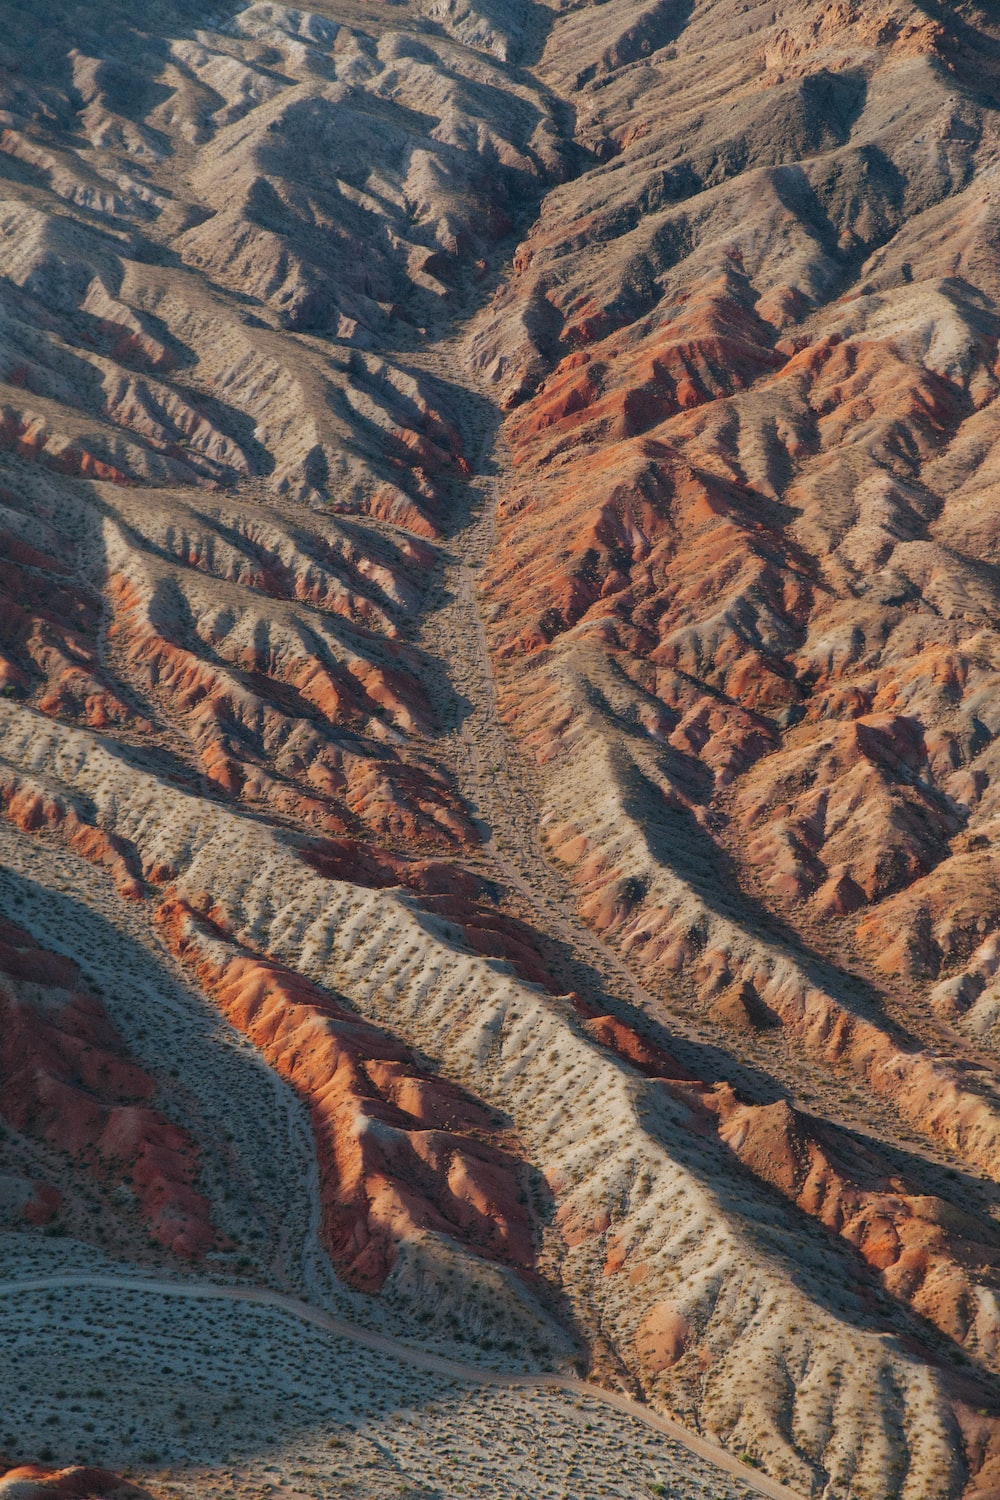 birdseye view photography of brown mountains